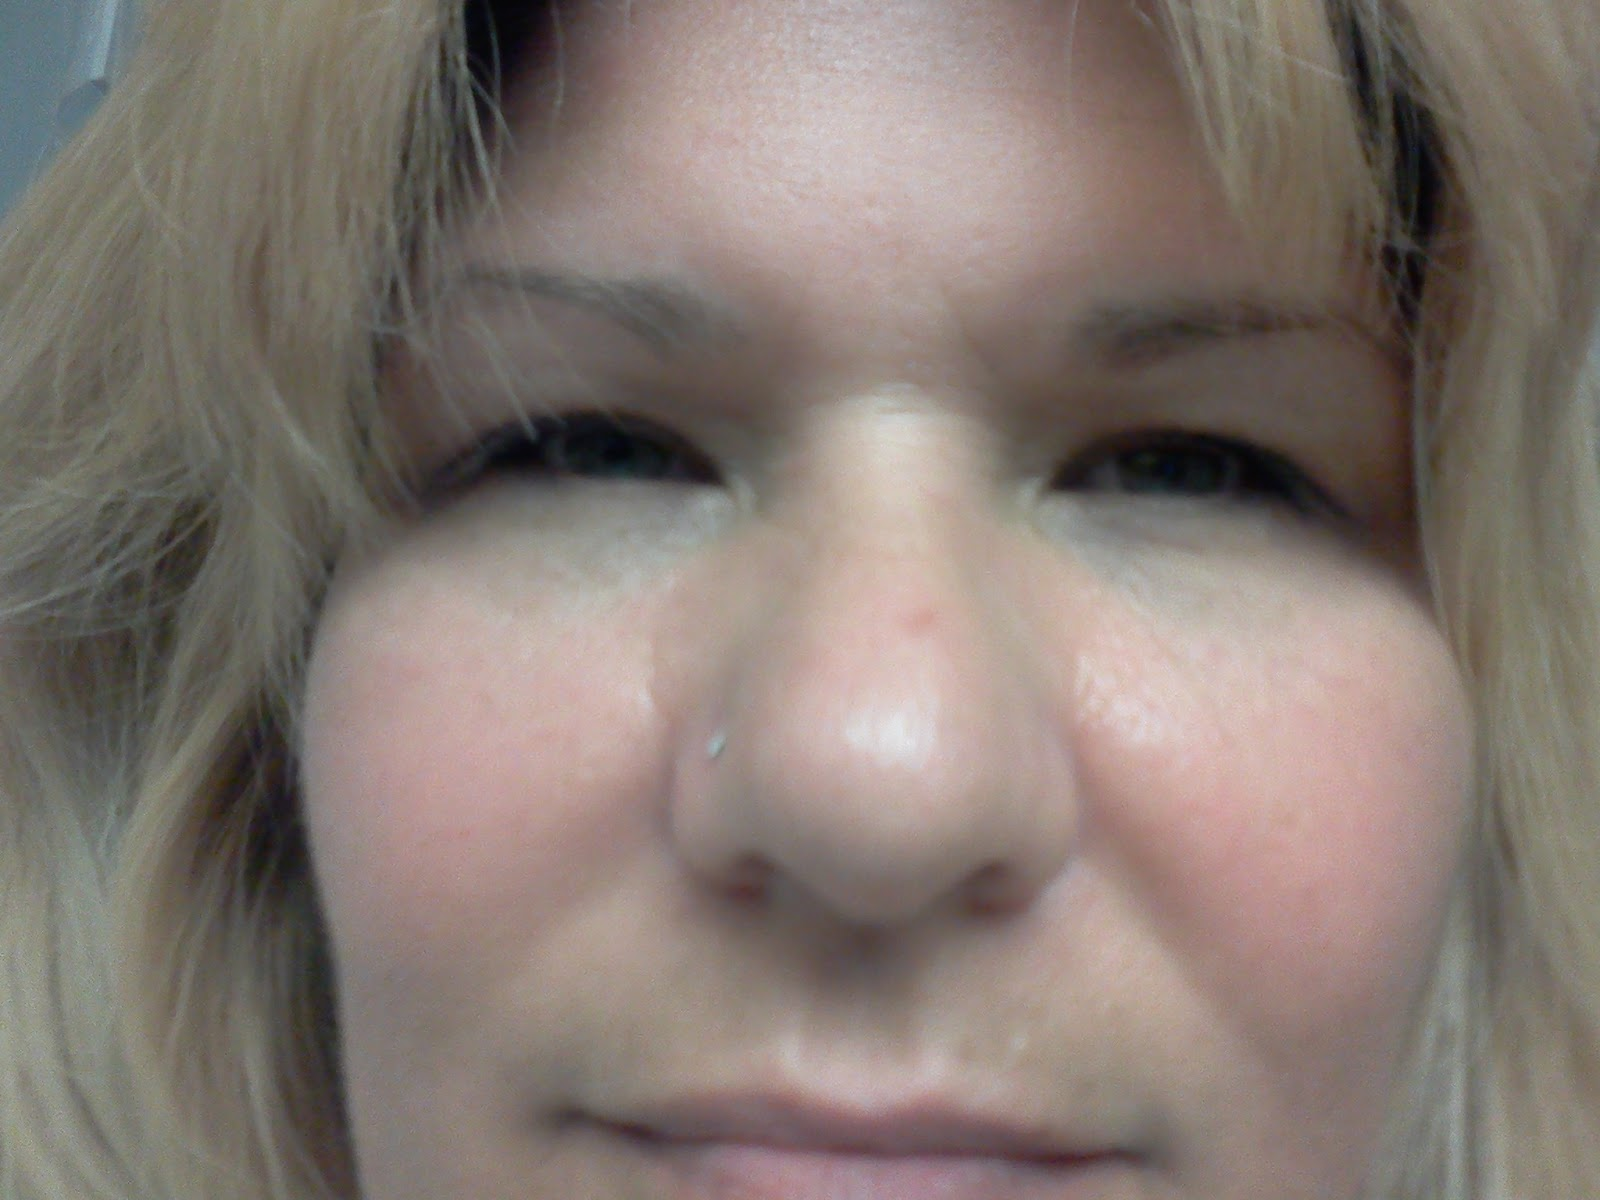 For benazepril side effects facial swelling